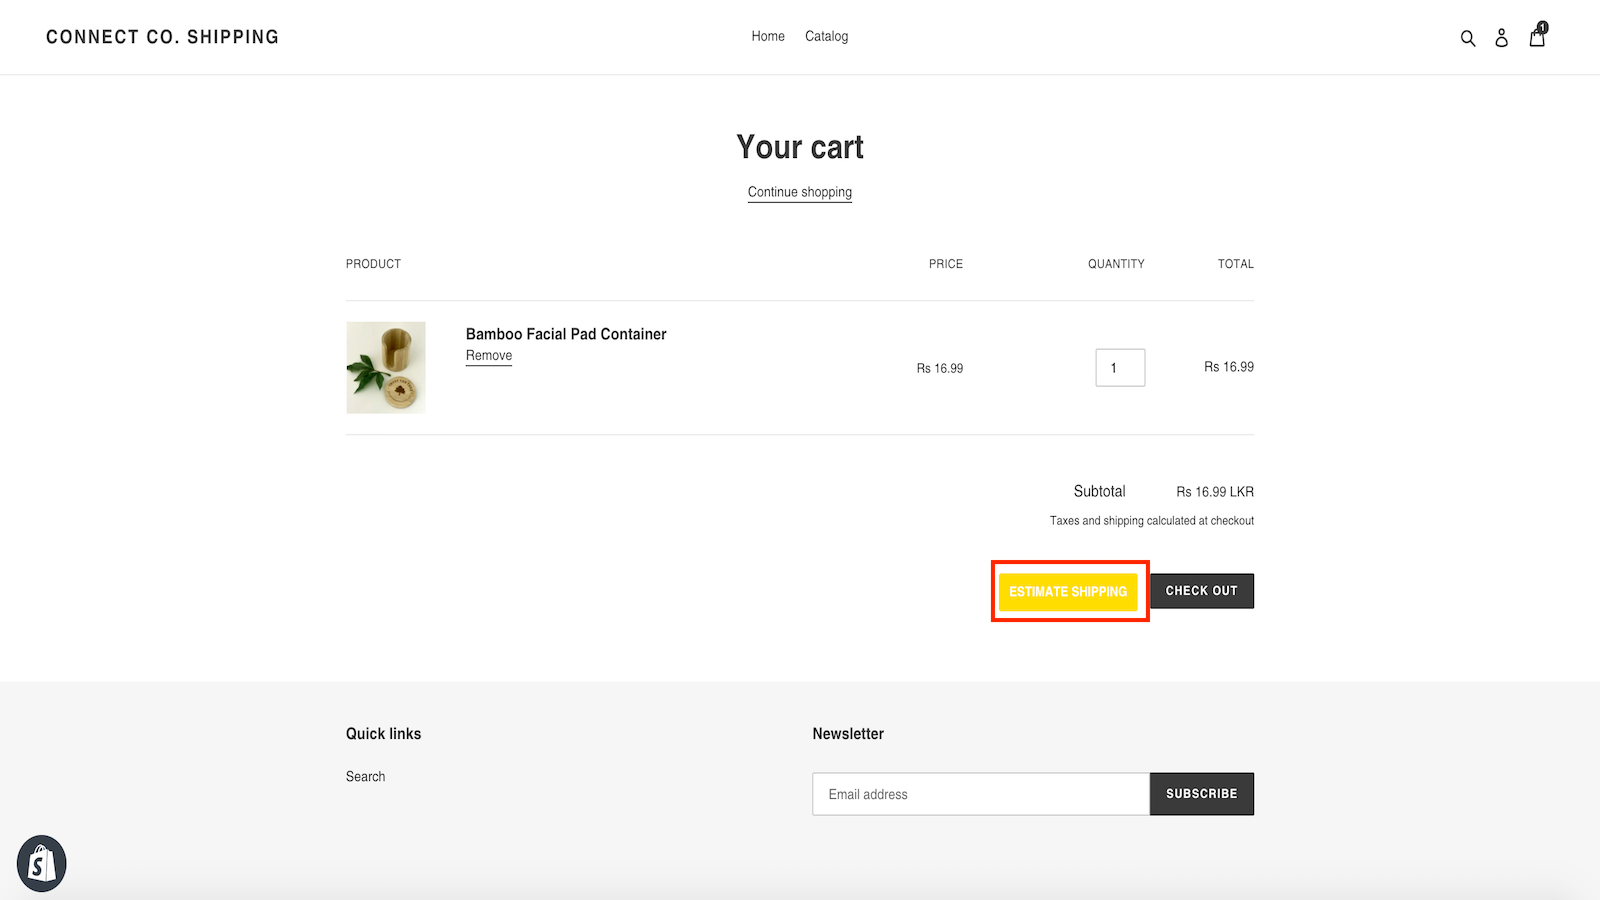 Estimate Shipping button will appear in cart page when activate